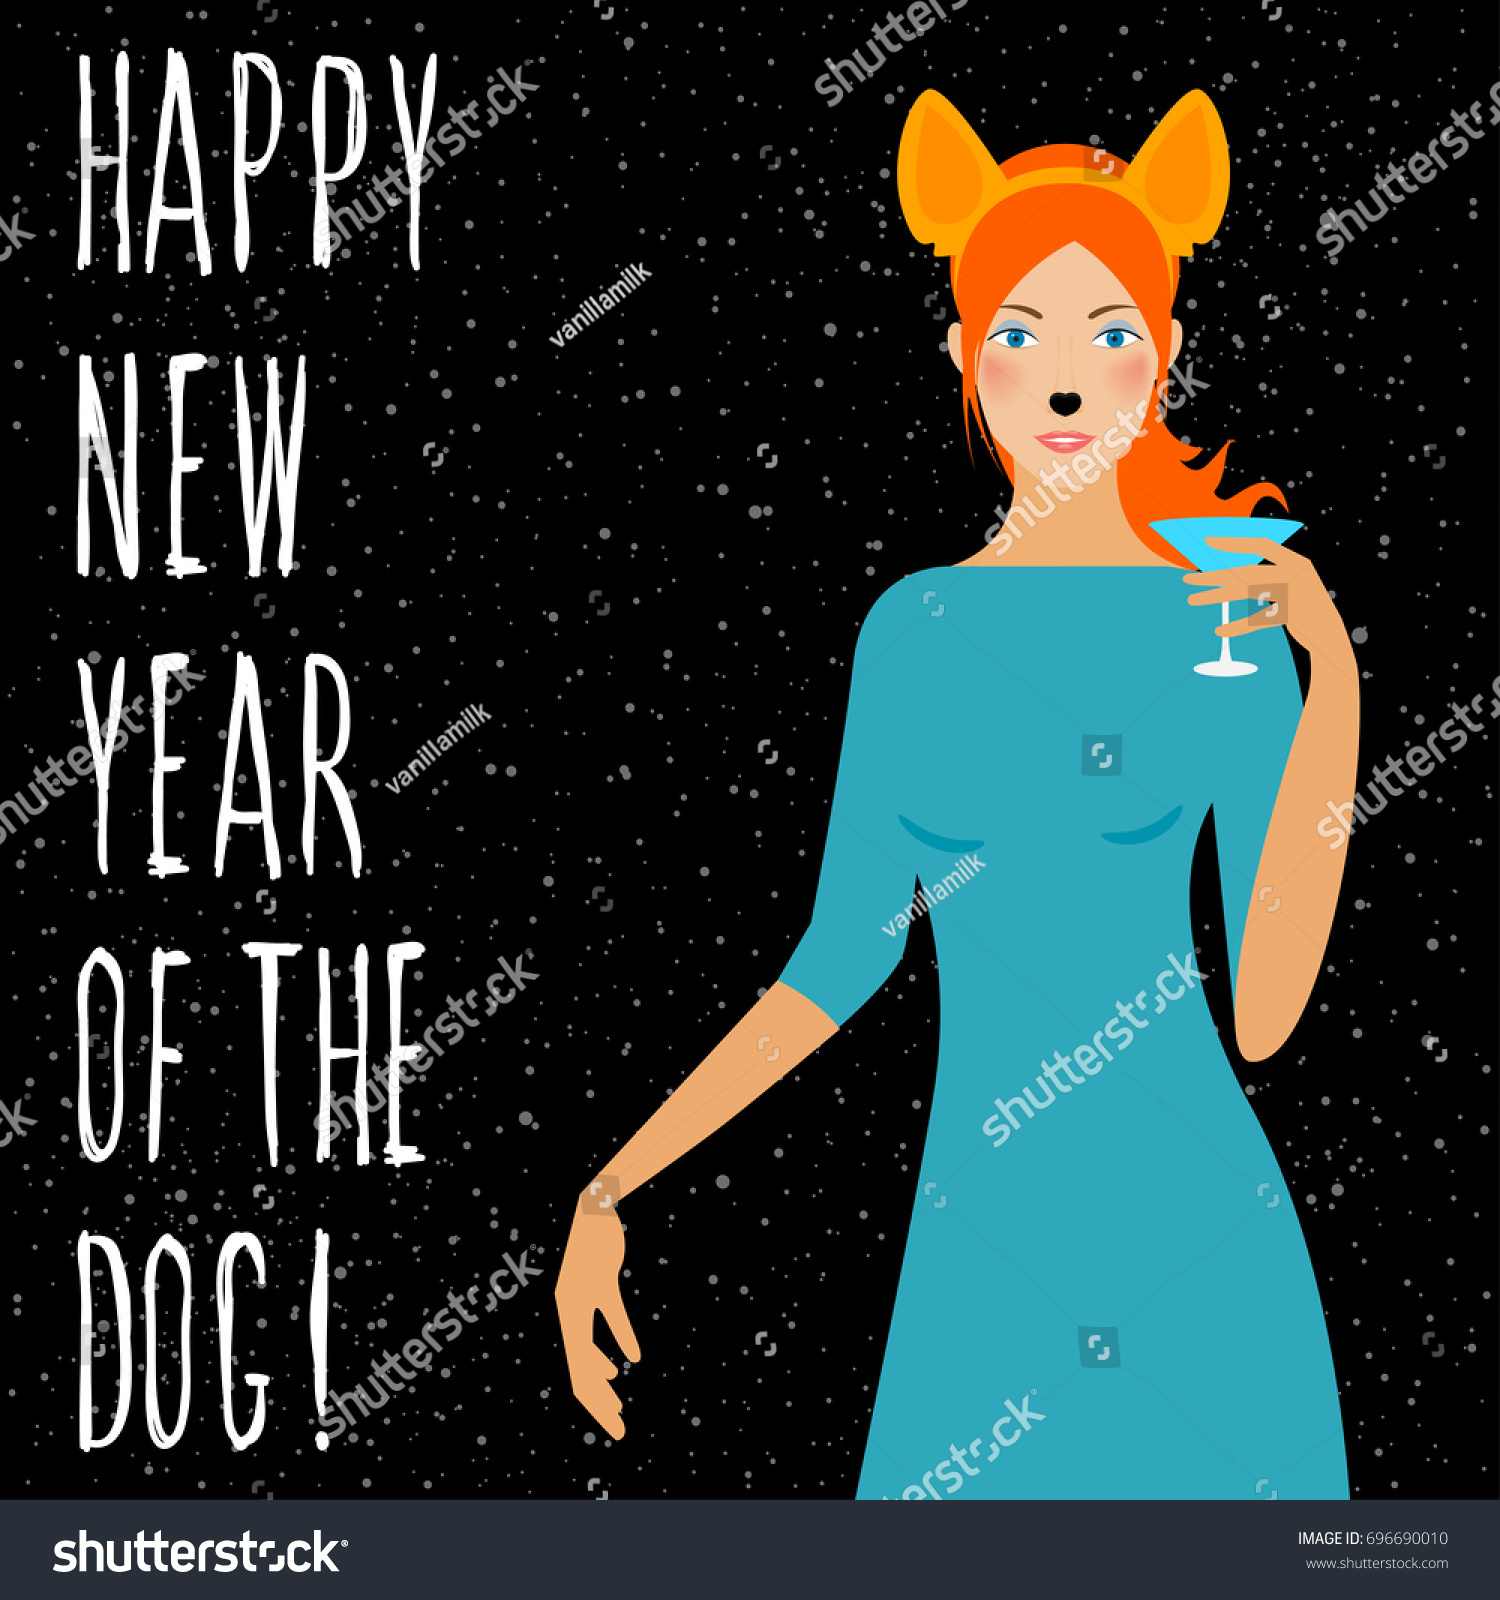 happy new year card handwritten quote and cartoon girl with dog ears mask for new